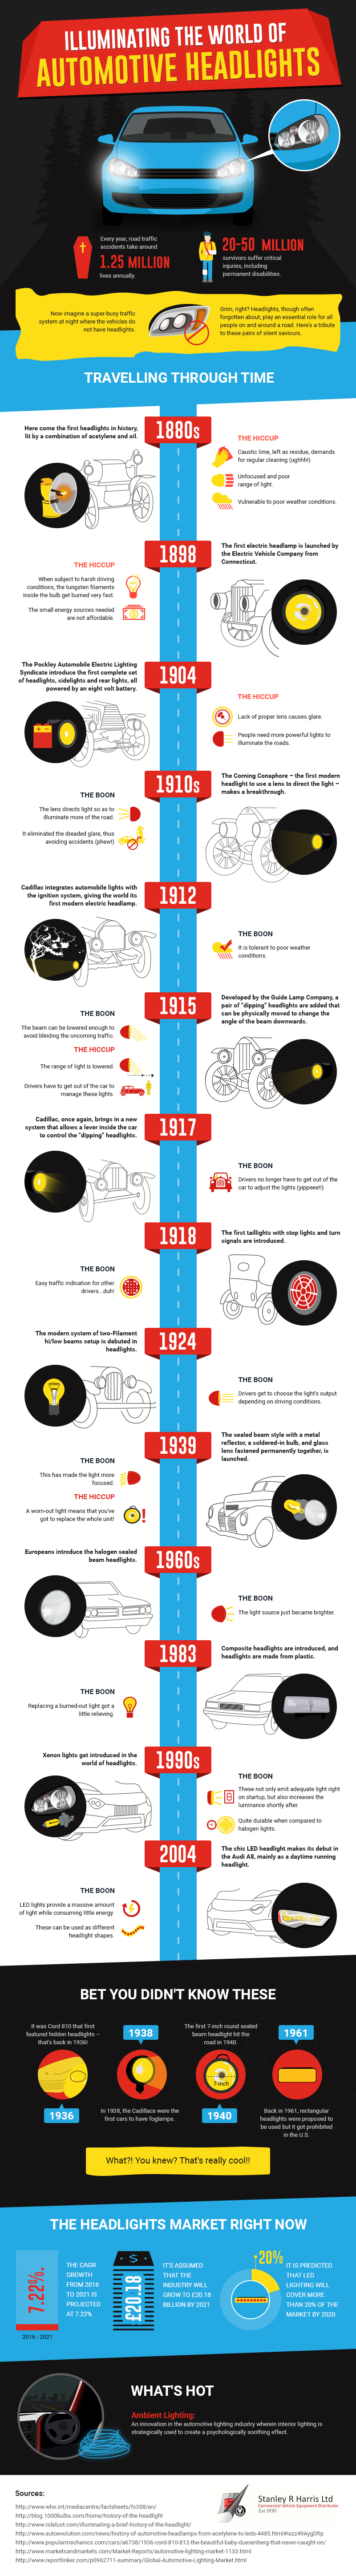 Infographic: The Historyof the Automobile Headlight